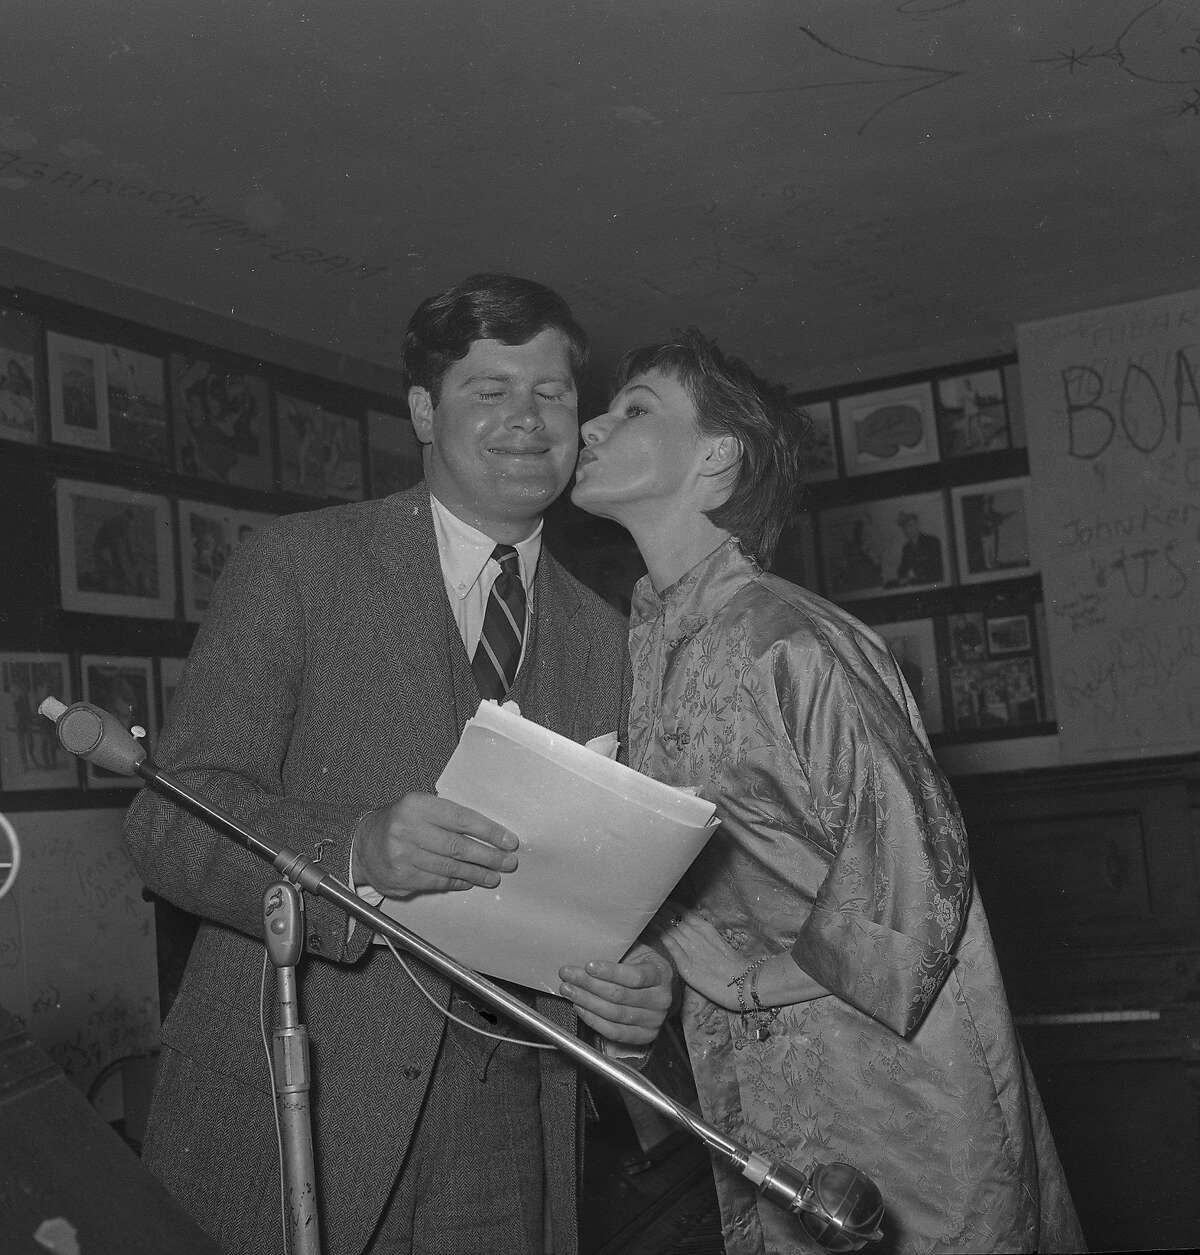 Warren Hinckle, kissed by Charlotte Fairchild, during his run for Supervisor Photo taken August 29, 1961